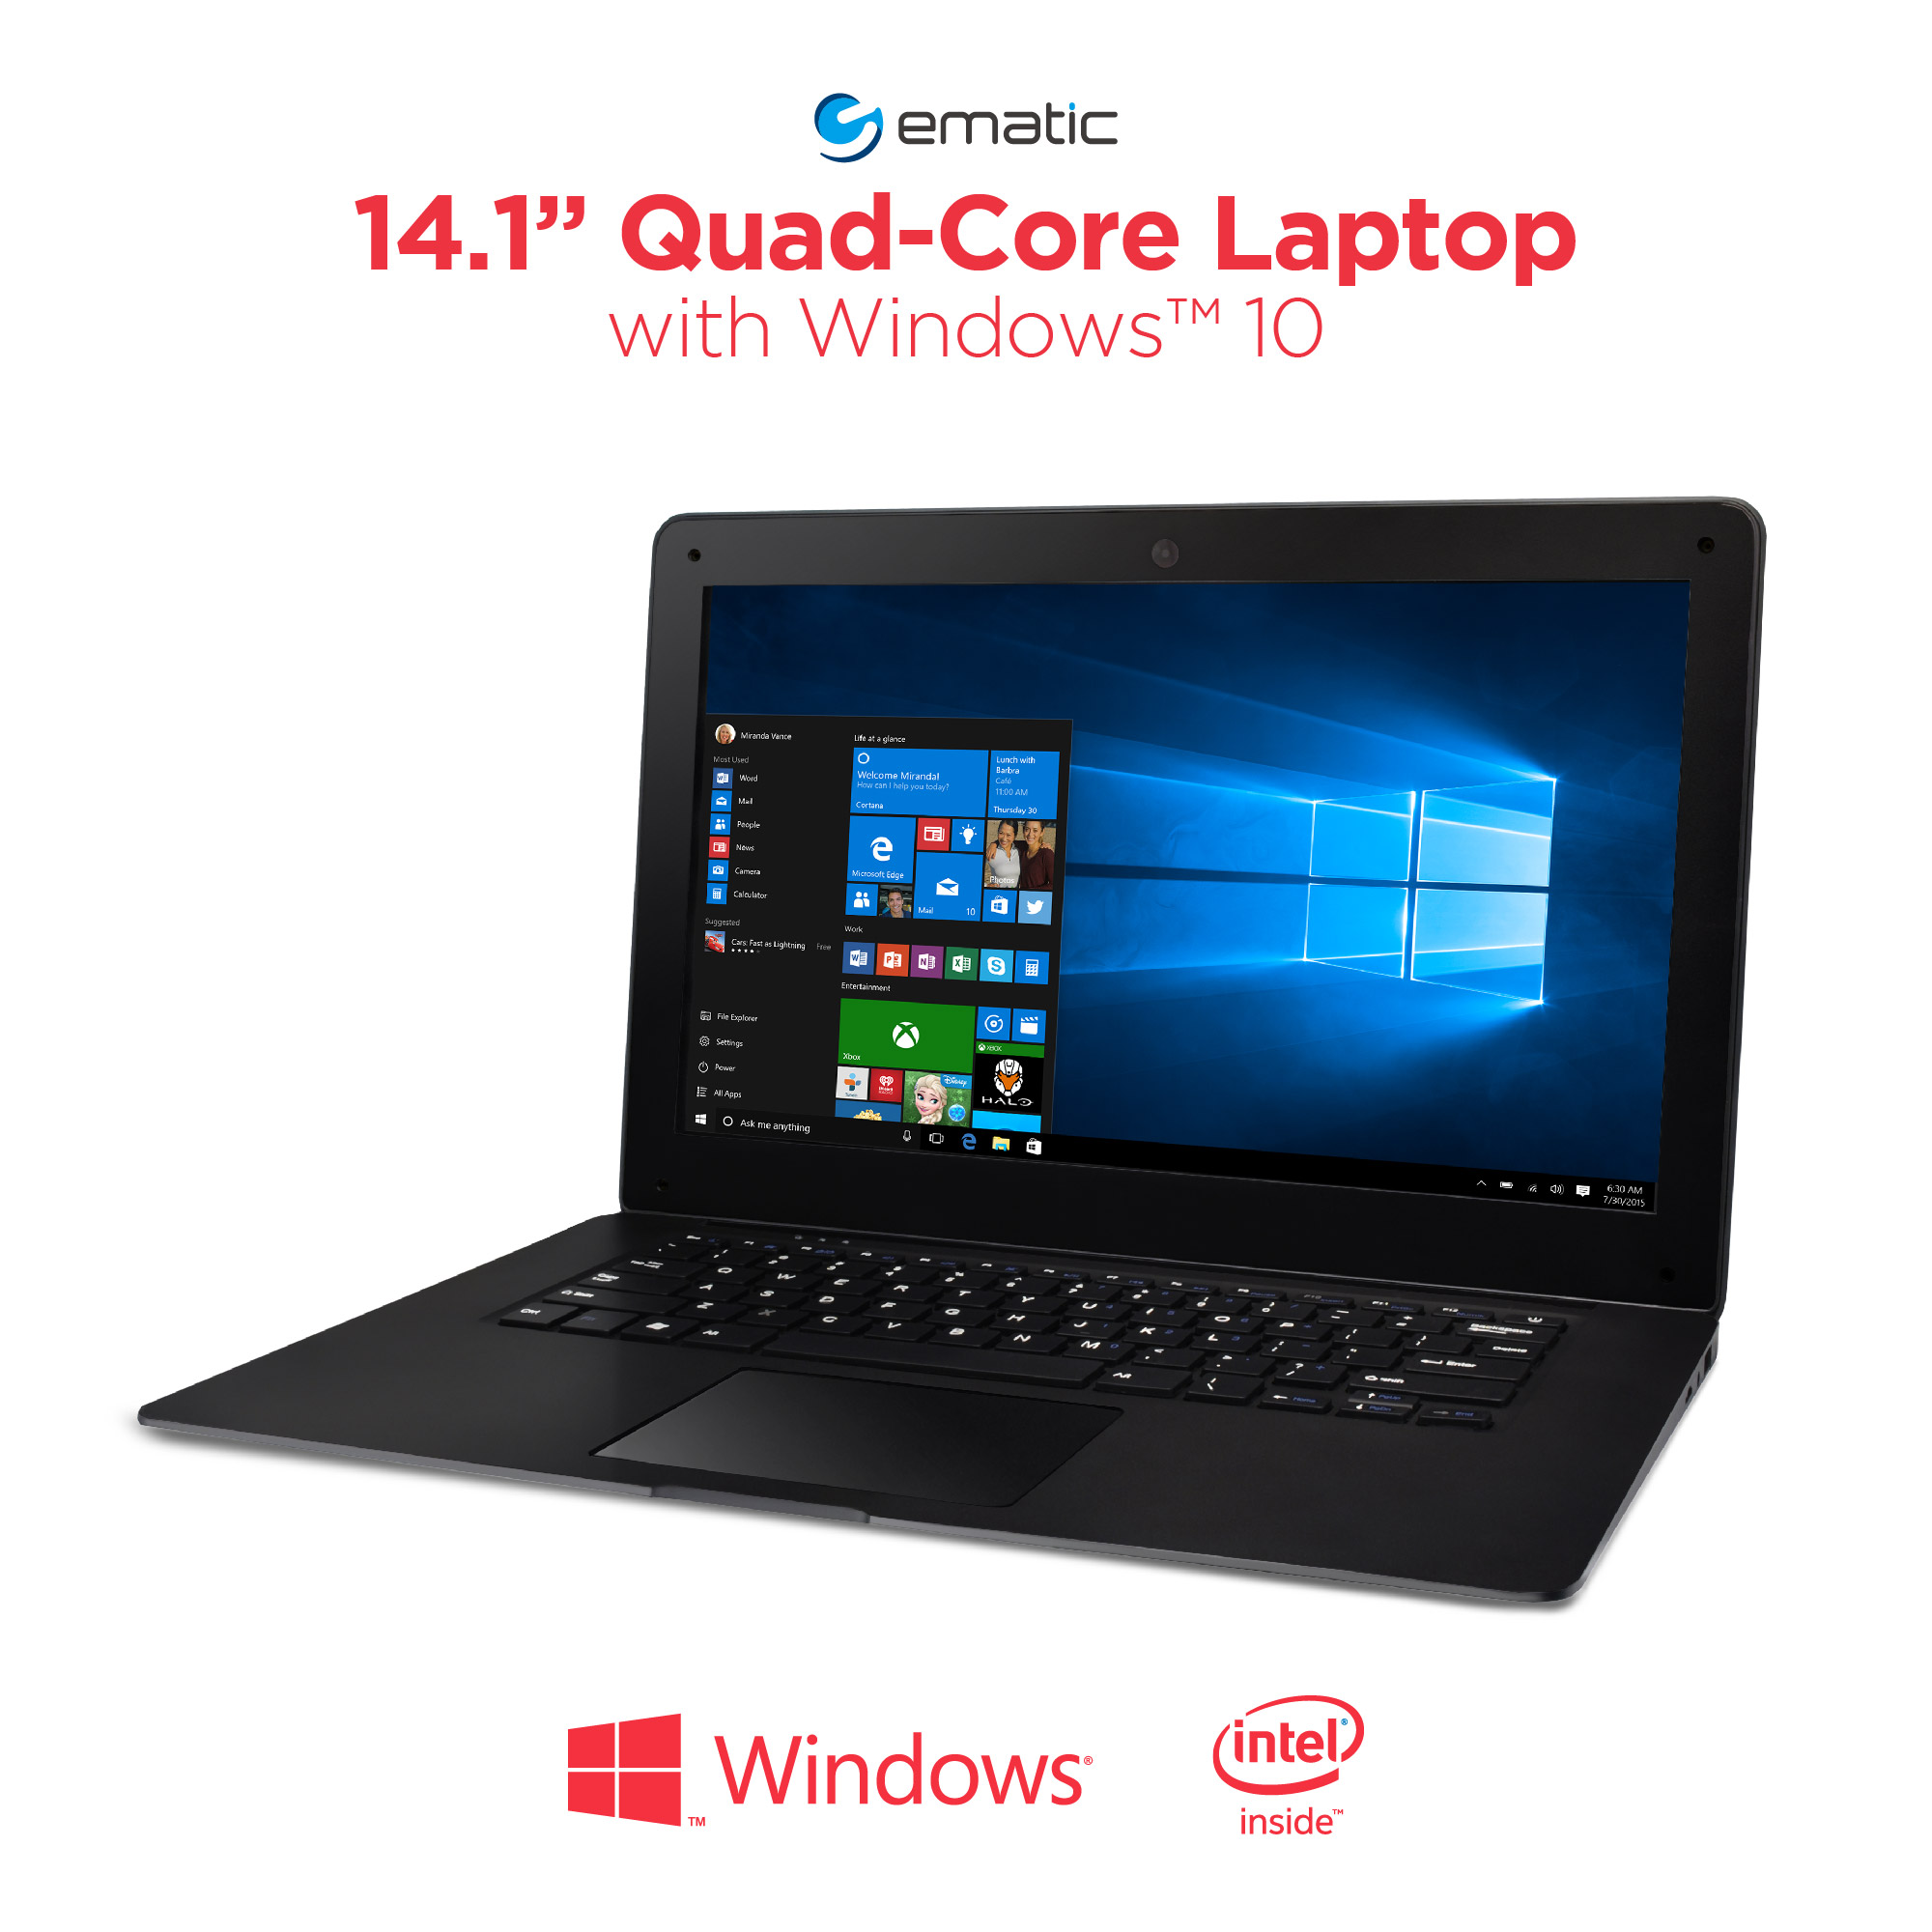 "Ematic 14.1"" EWT144 Laptop PC with Intel Atom Quad-Core Processor, 2GB Memory, 32GB Flash Storage and Windows 10"